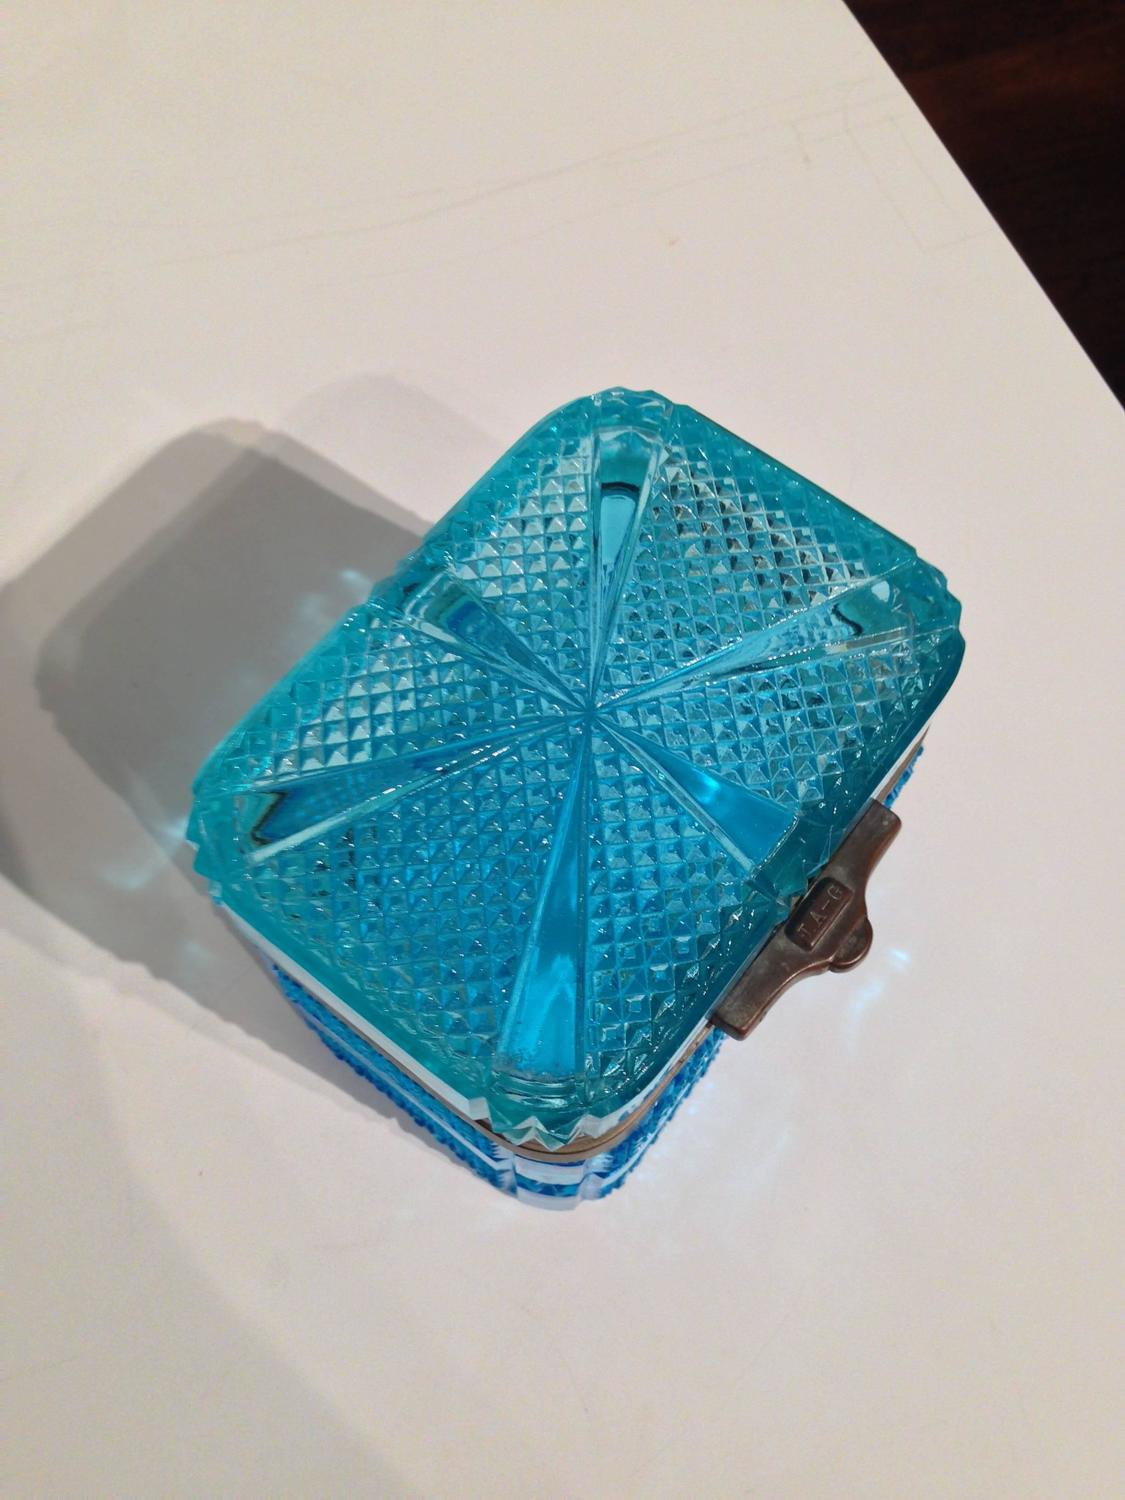 Russian Pressed Glass Tea Caddy For Sale at 1stdibs